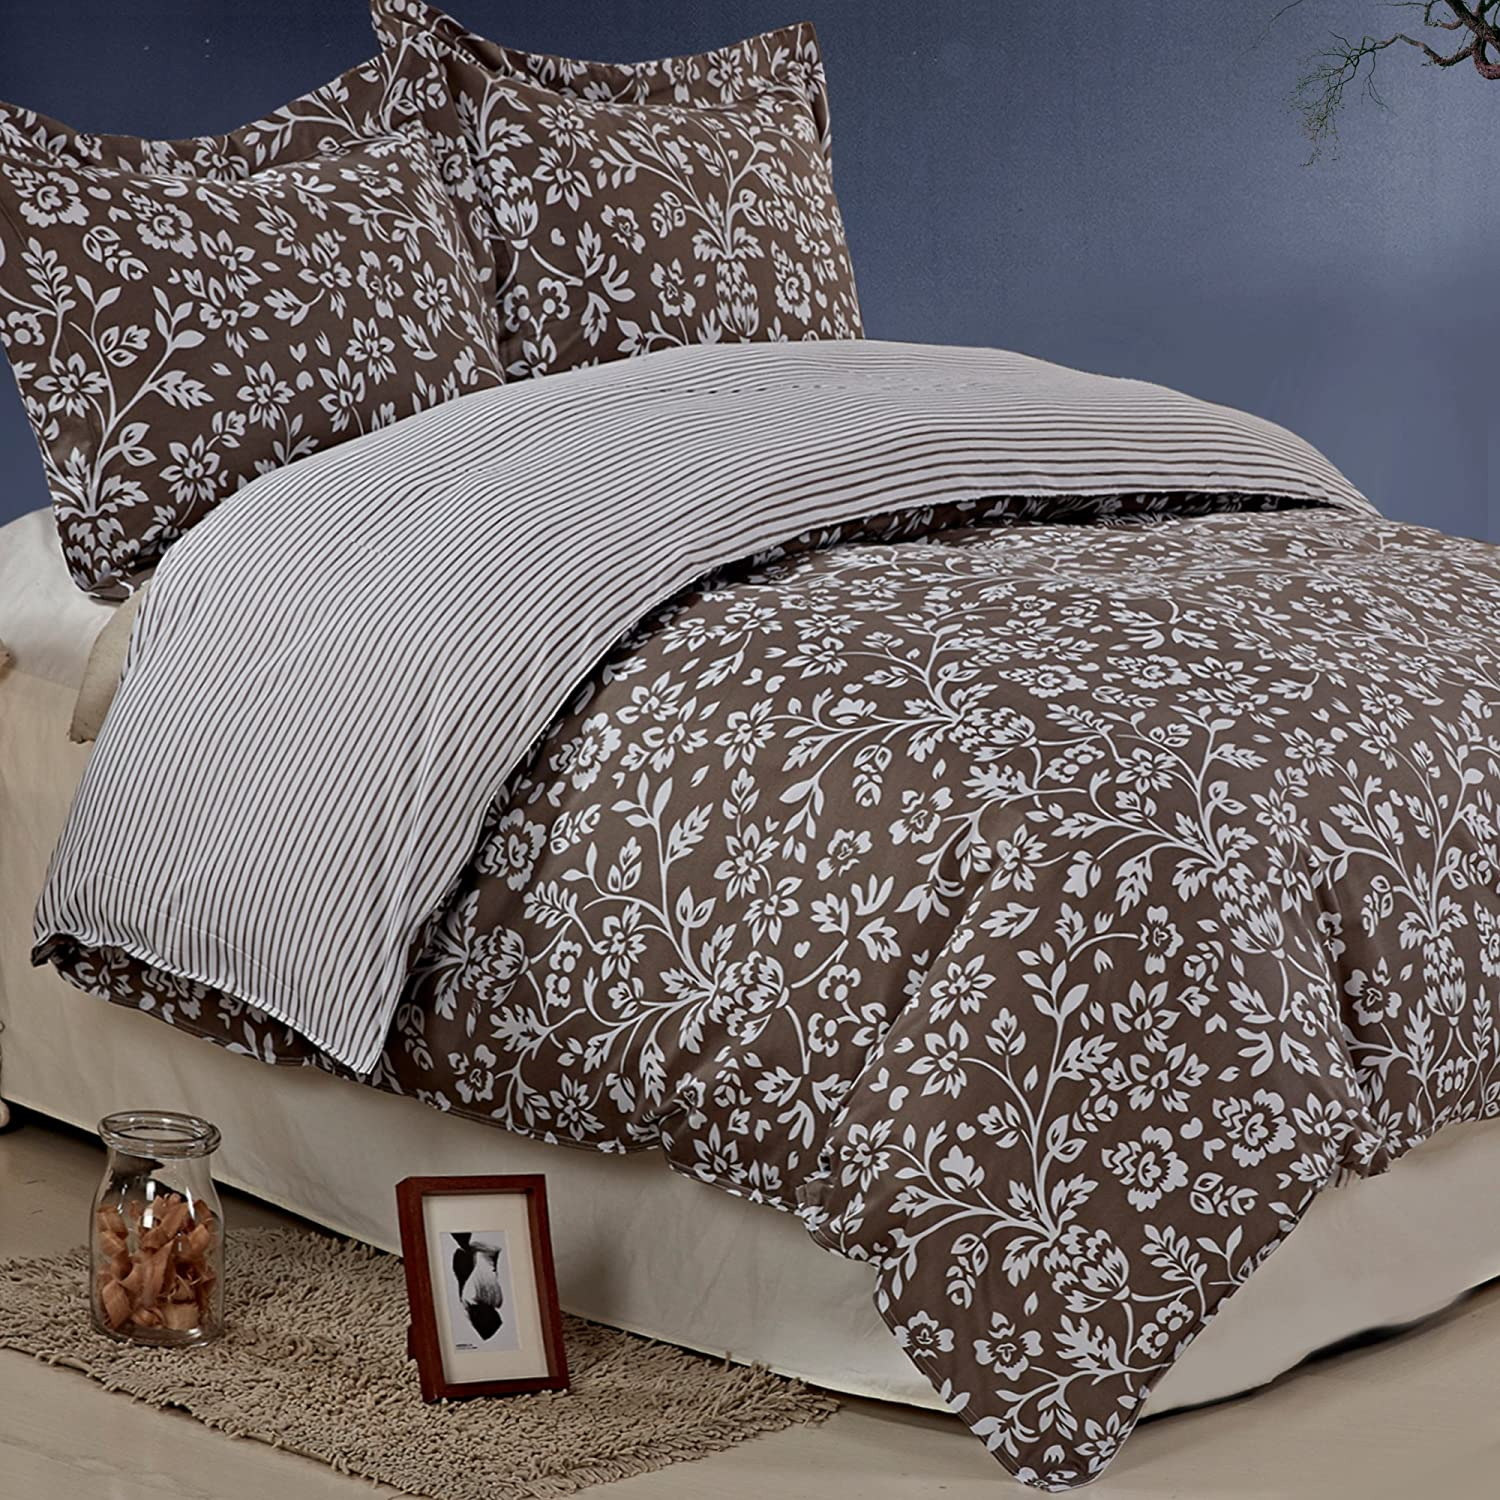 Brown Printed Floral Pattern Duvet Cover Sets Full Queen Size